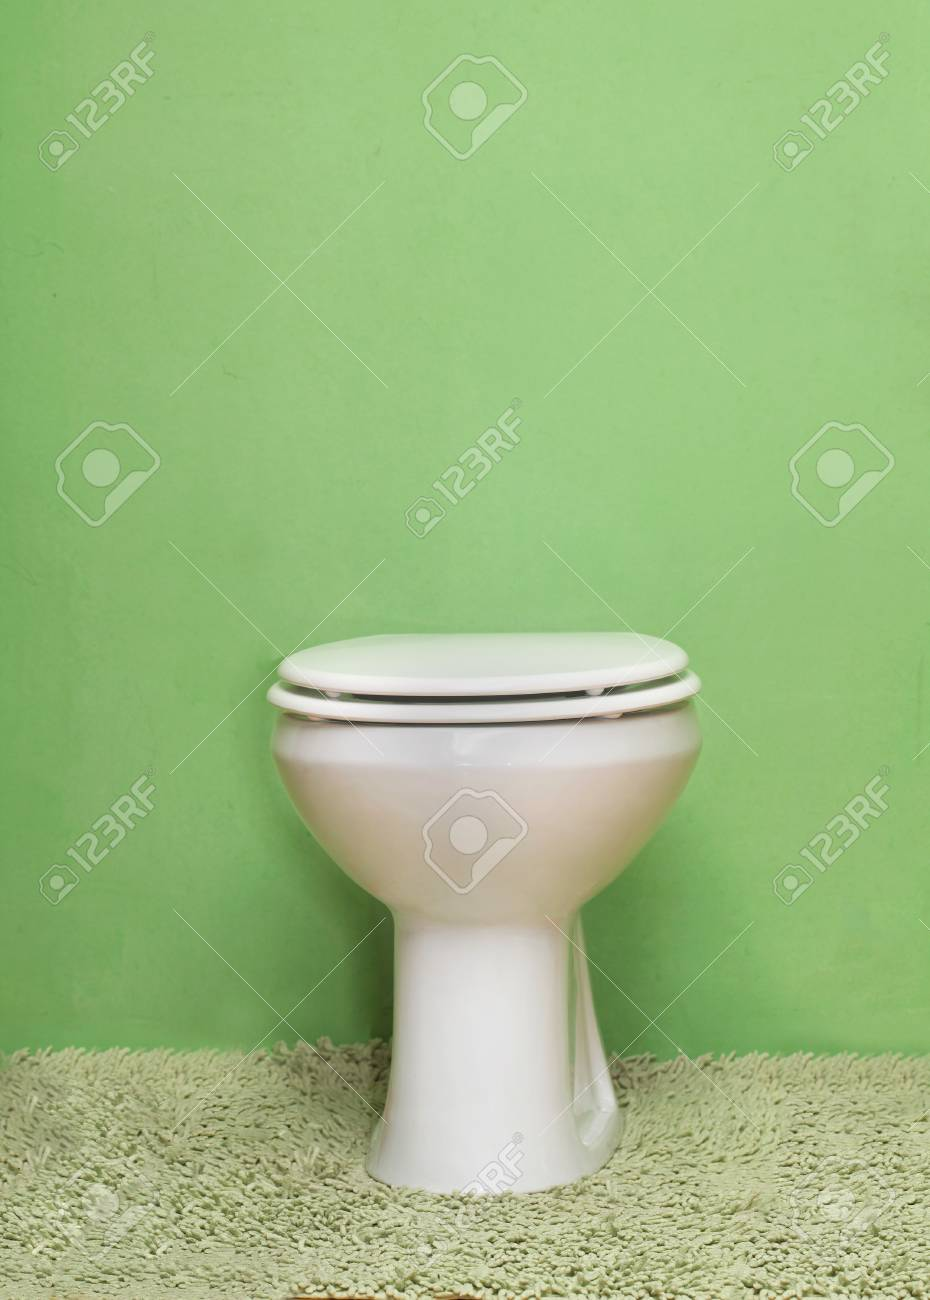 Sensational Ceramic Toilet Bowl With Closed Toilet Seat Theyellowbook Wood Chair Design Ideas Theyellowbookinfo